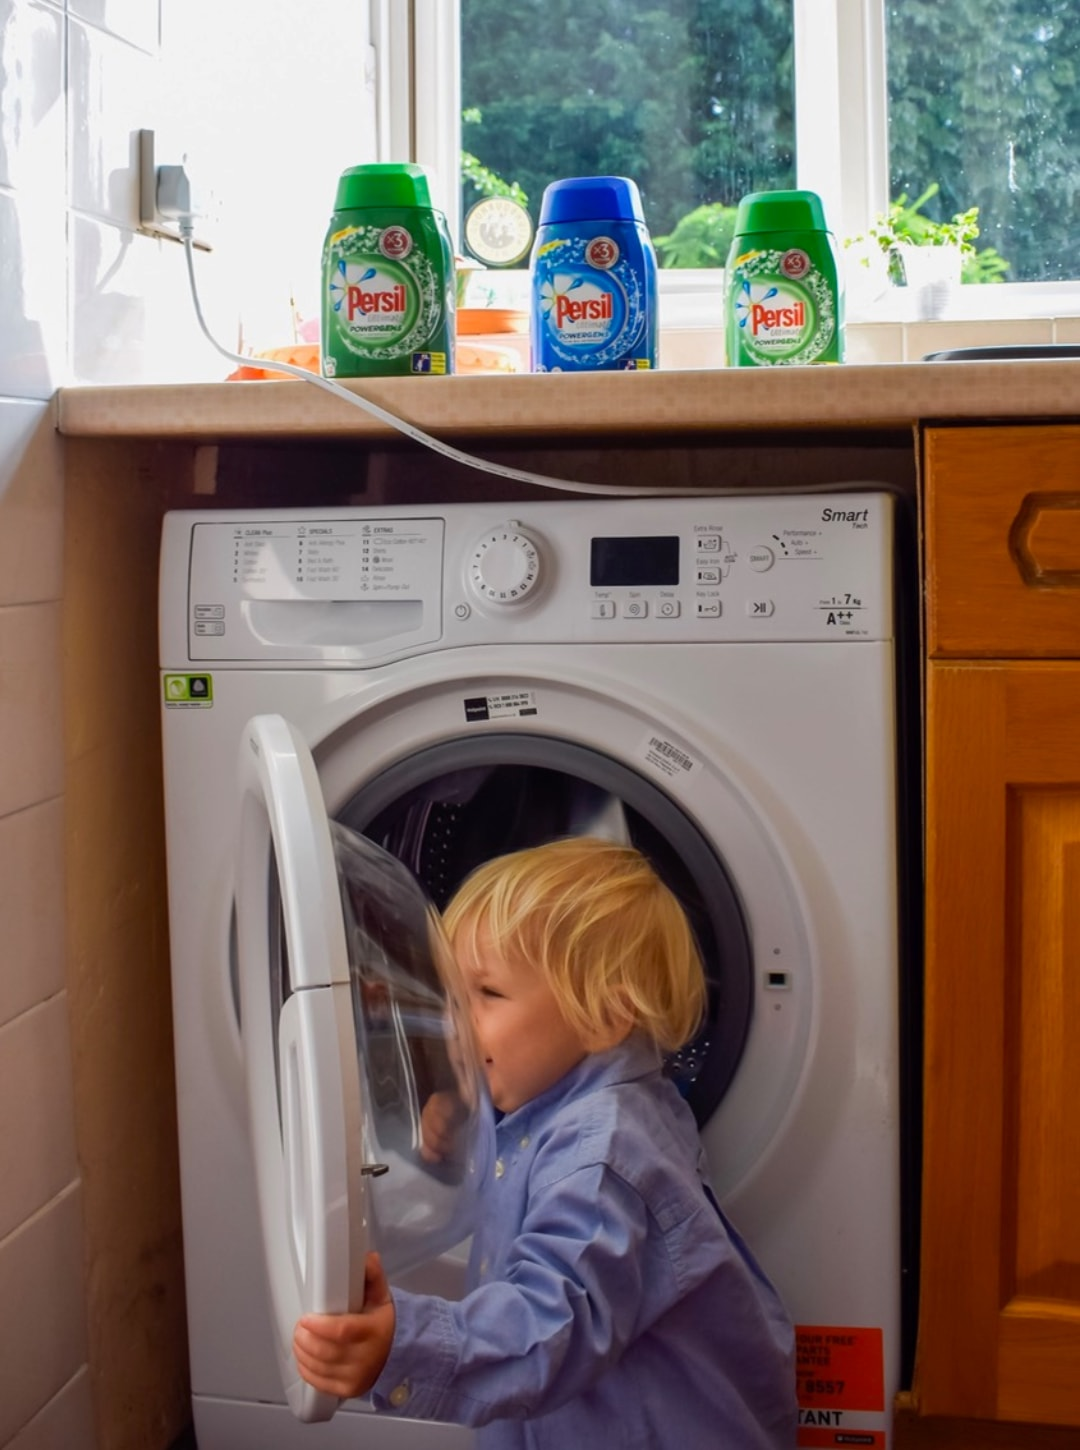 A photograph of a little boy (22 months old) playing with a washing machine - on top of the washing machine are three bottles of Persil Powergems - Sharing My Laundry Gems With Persil Powergems - Mrs H's favourite things